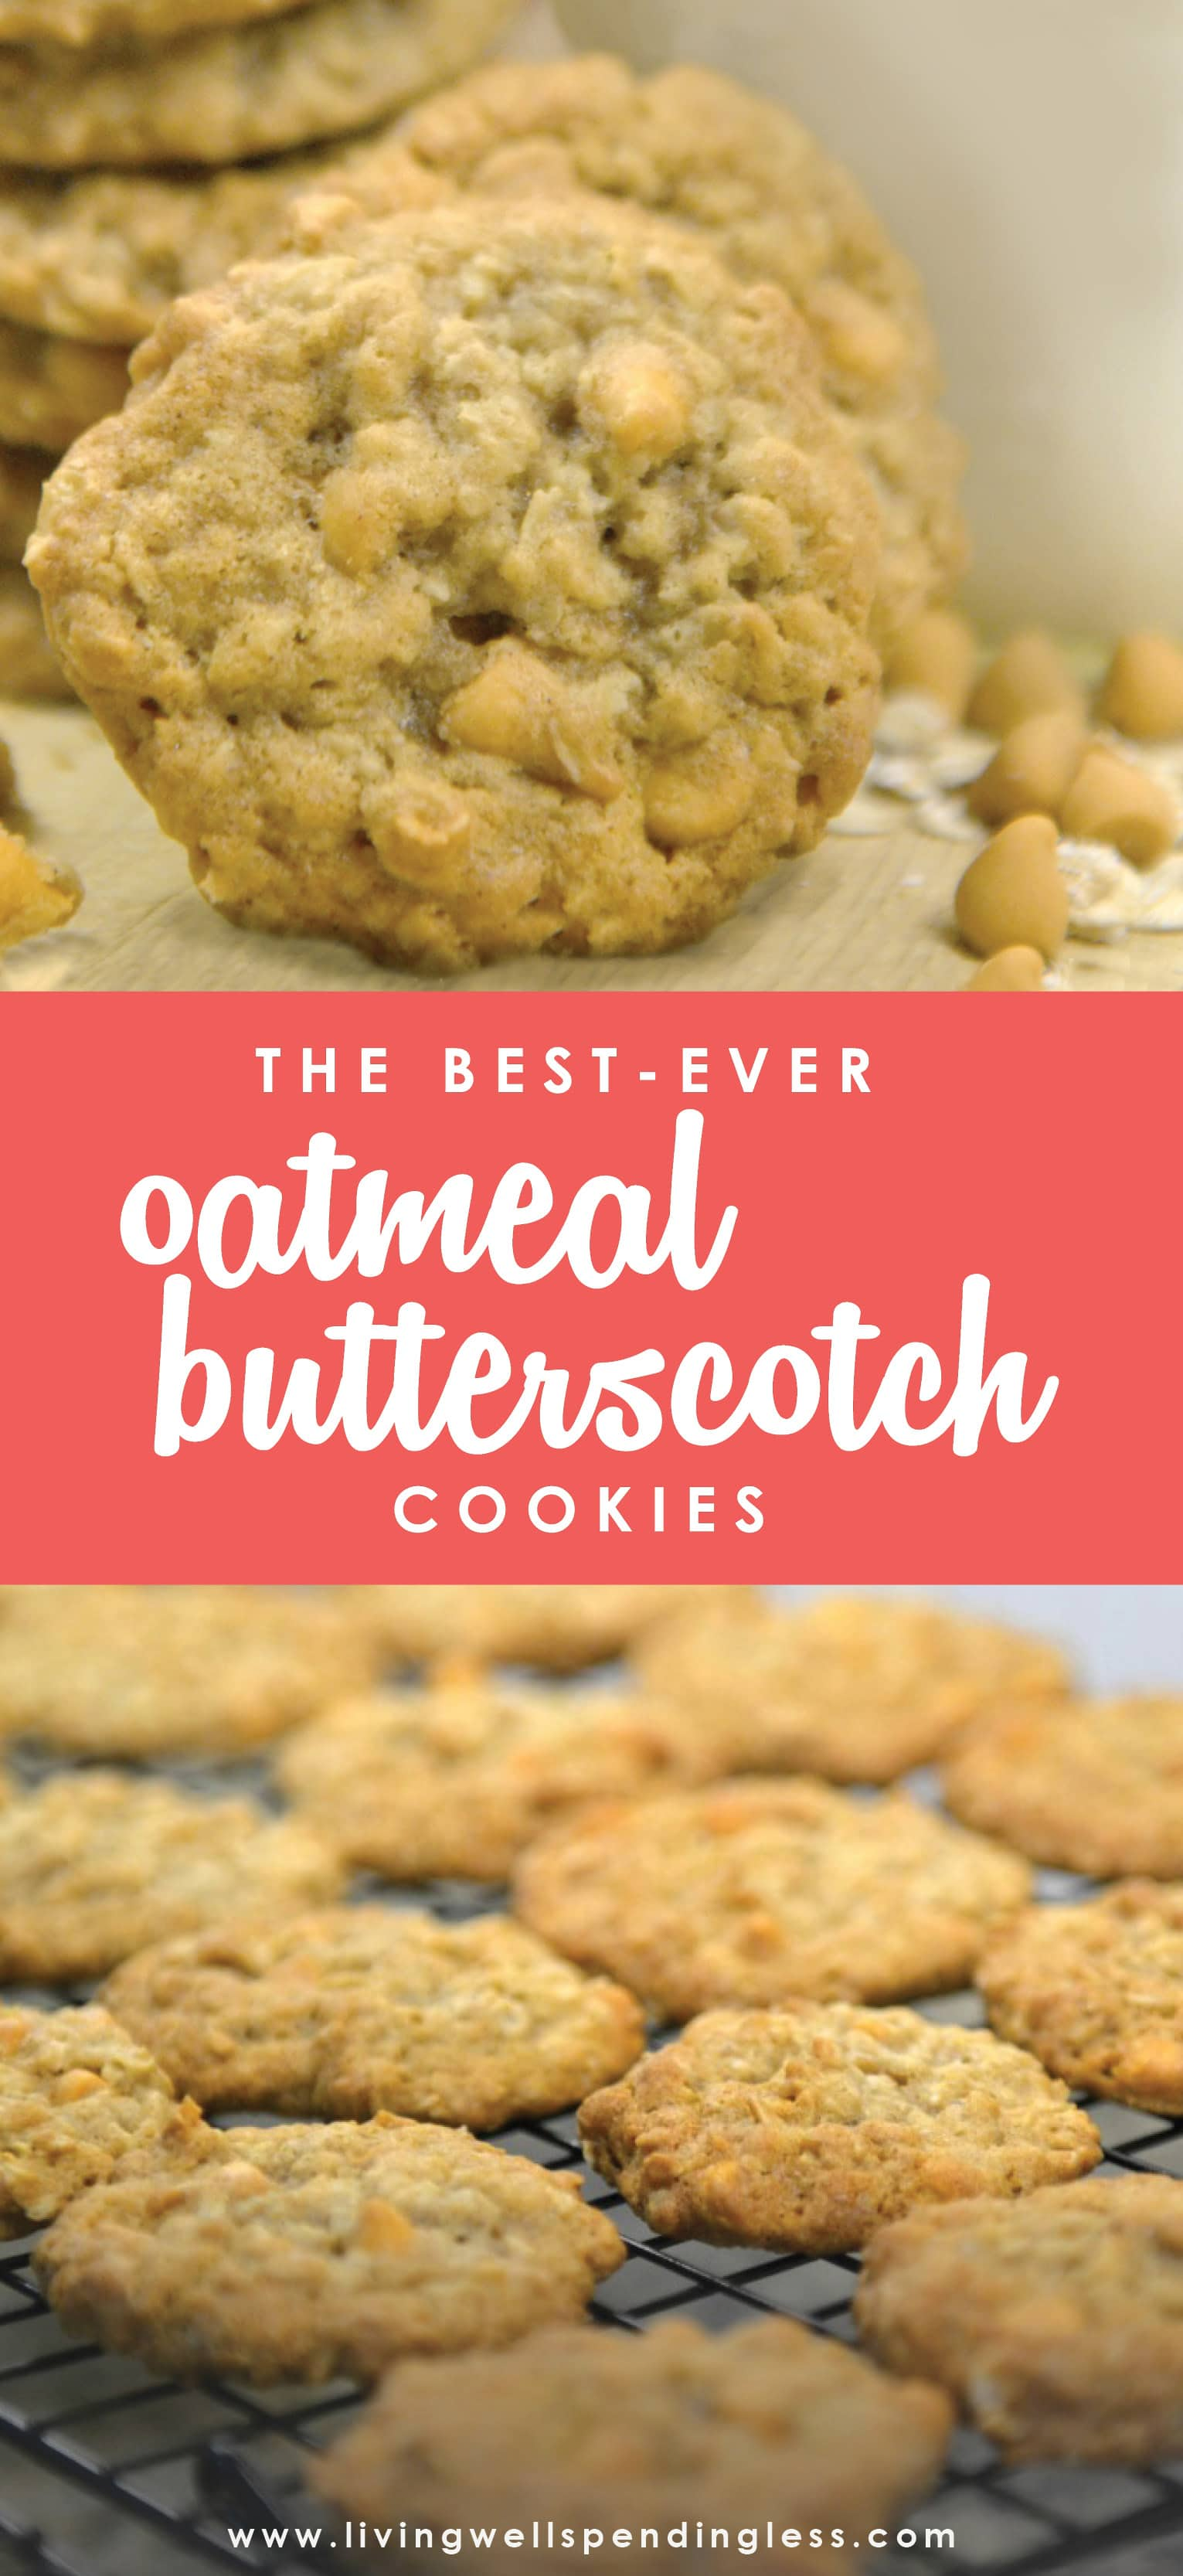 Love homemade cookies but don't always have time for baking? These oh-so-yummy oatmeal butterscotch cookies freeze beautifully and taste just as good straight out of the freezer as straight out of the oven!